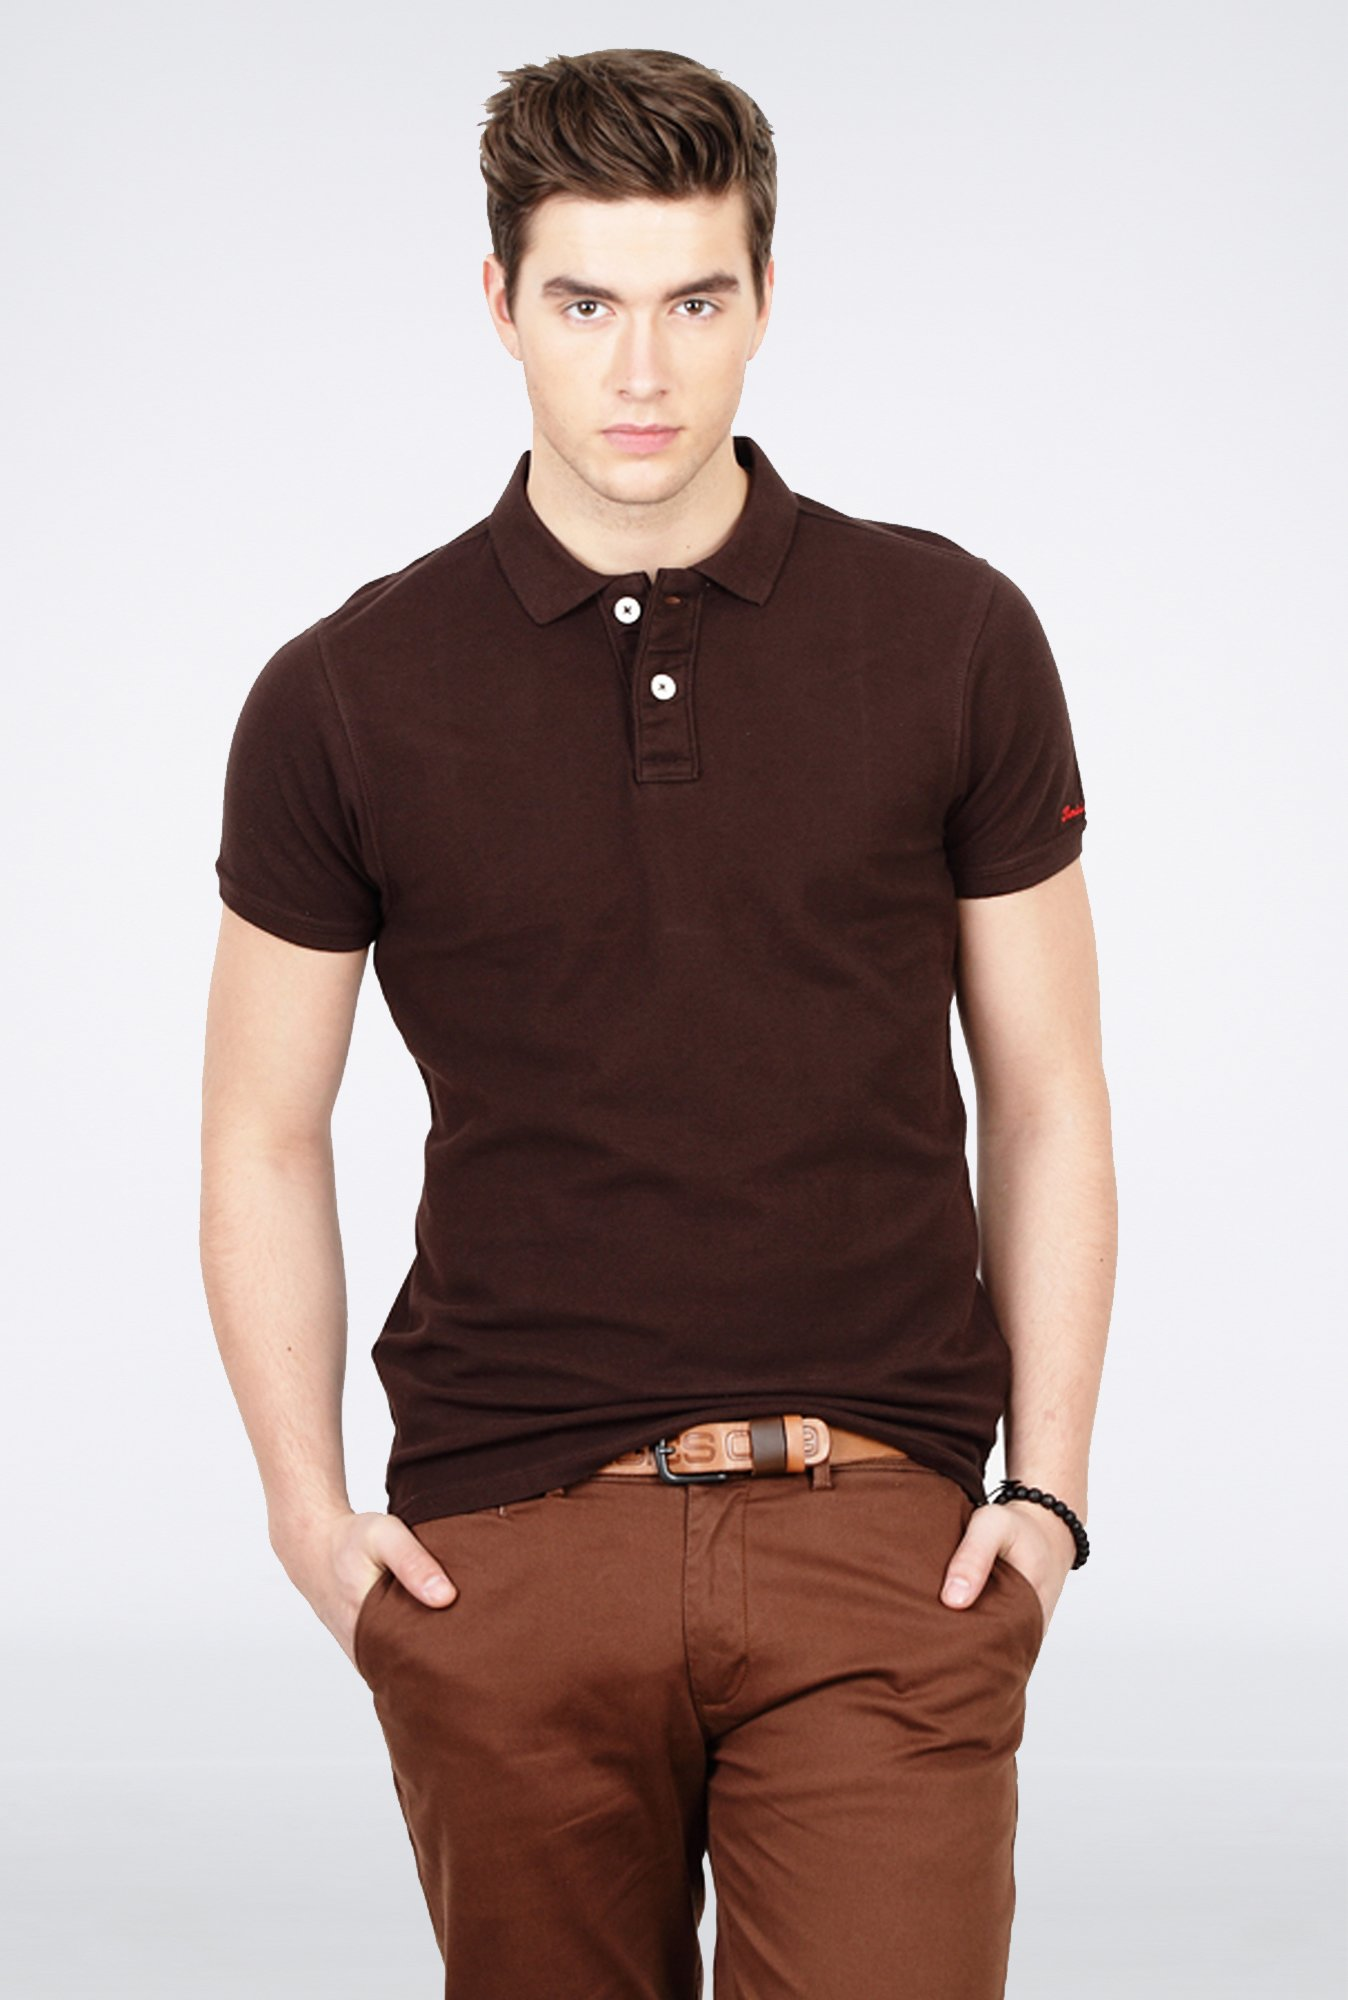 Basics Brown Polo T Shirt